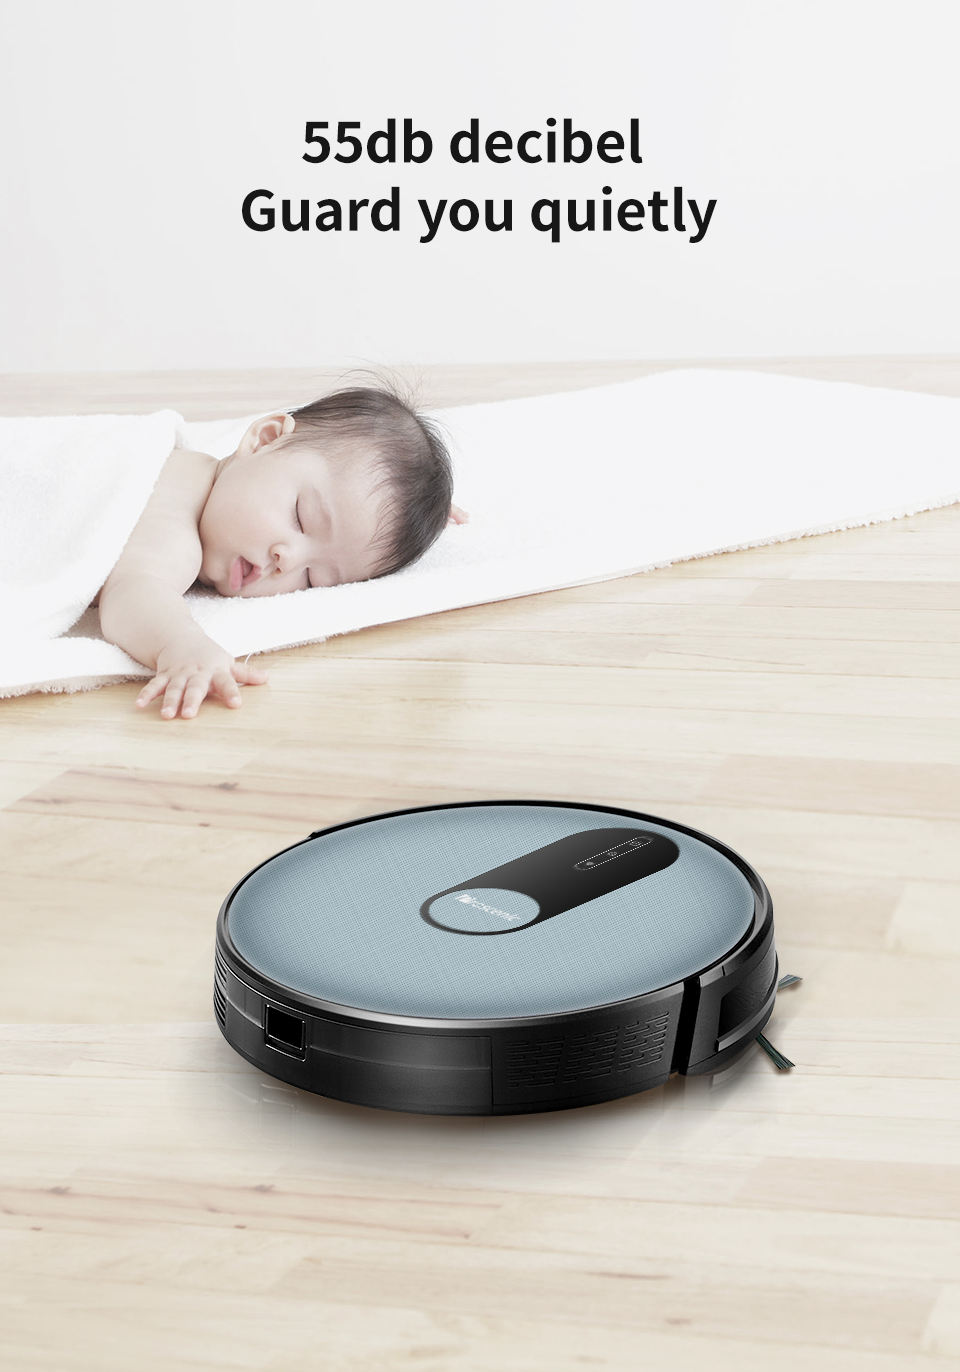 H9fc63ad938a247bebafac3539bad80c0h Proscenic 820P Robot Vacuum Cleaner Smart Planned 1800Pa Suction with wet cleaning for Home Carpet Cleaner Washing Smart Robot